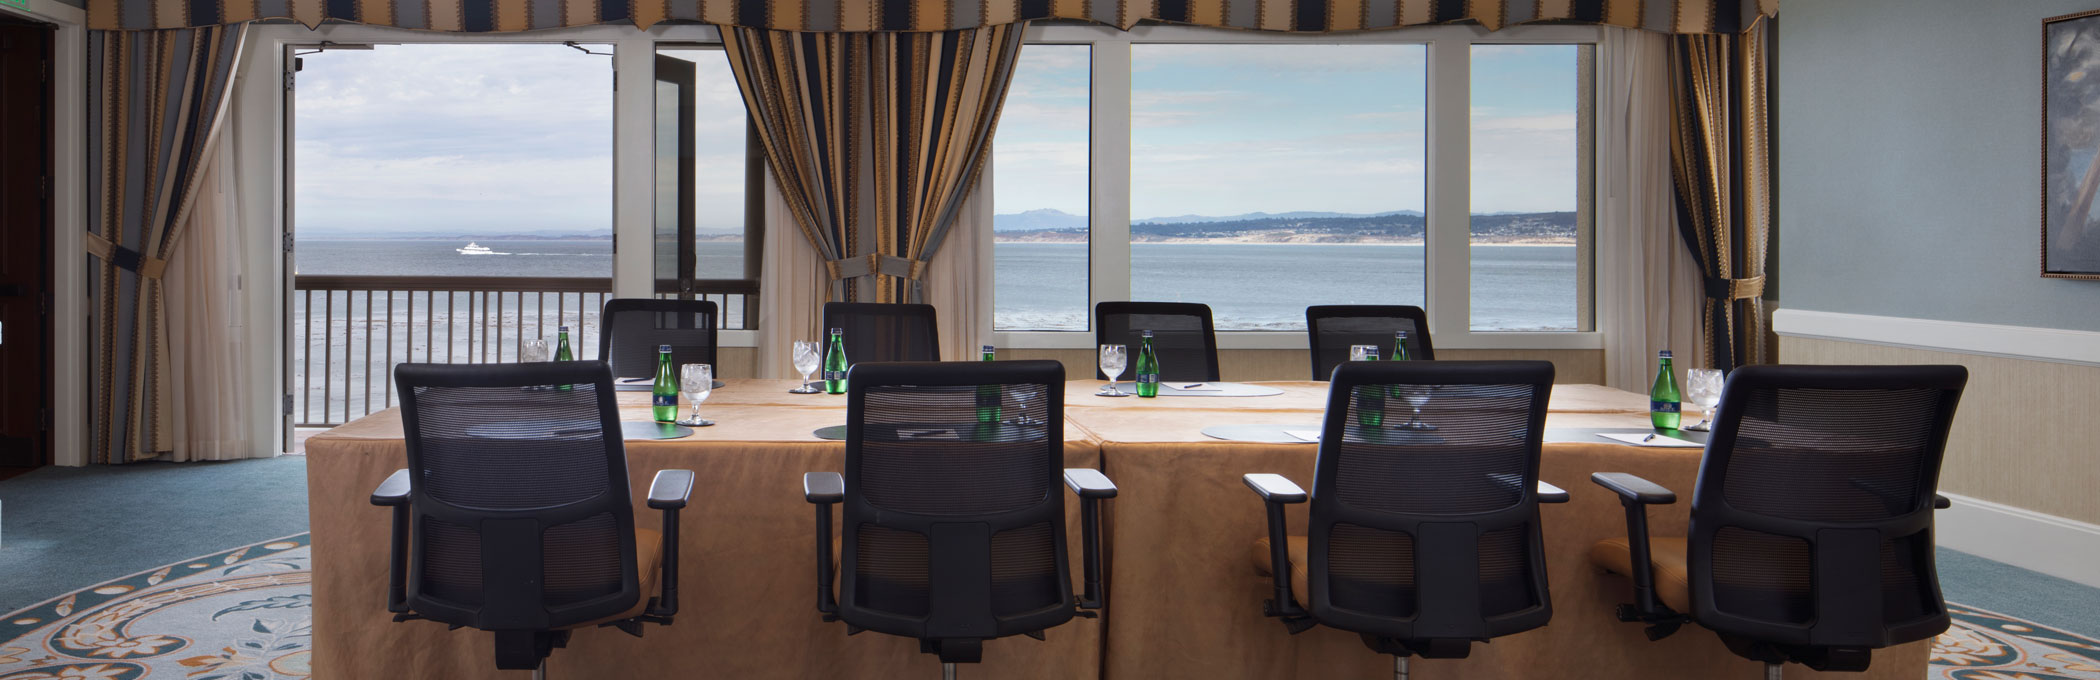 boardroom with open doors to the patio and view of the ocean